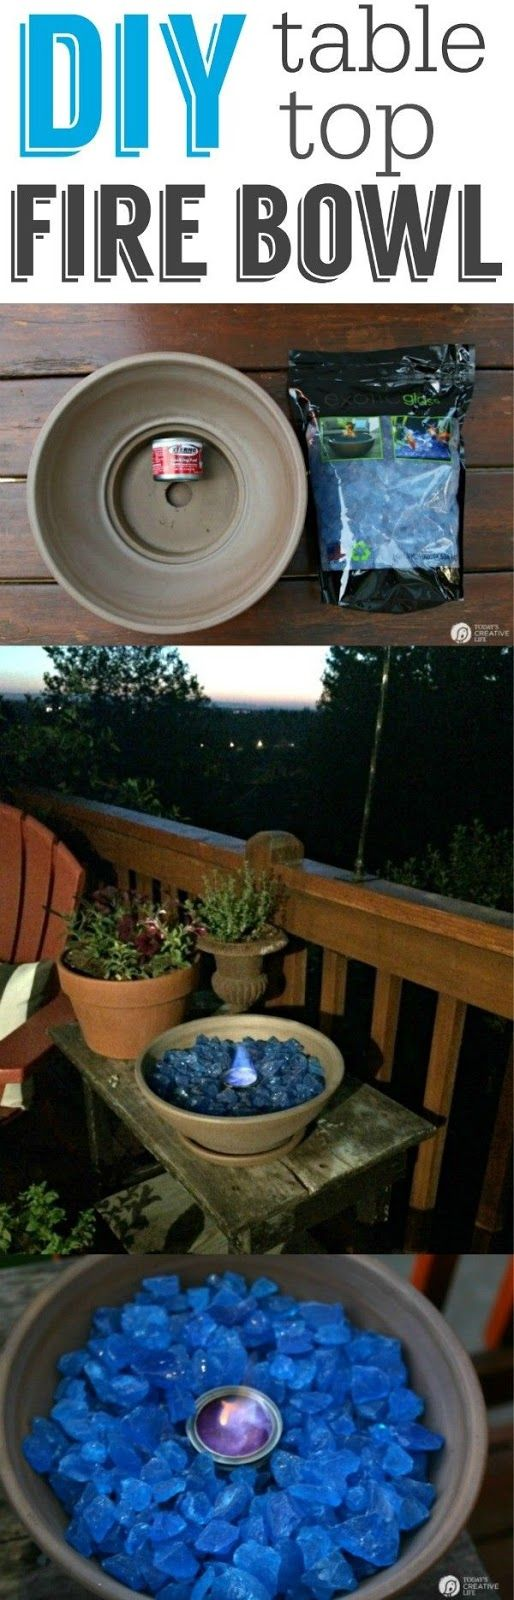 DIY Tabletop Fire Bowl | See the full tutorial on making your own tabletop fire bowl | Patio Ideas